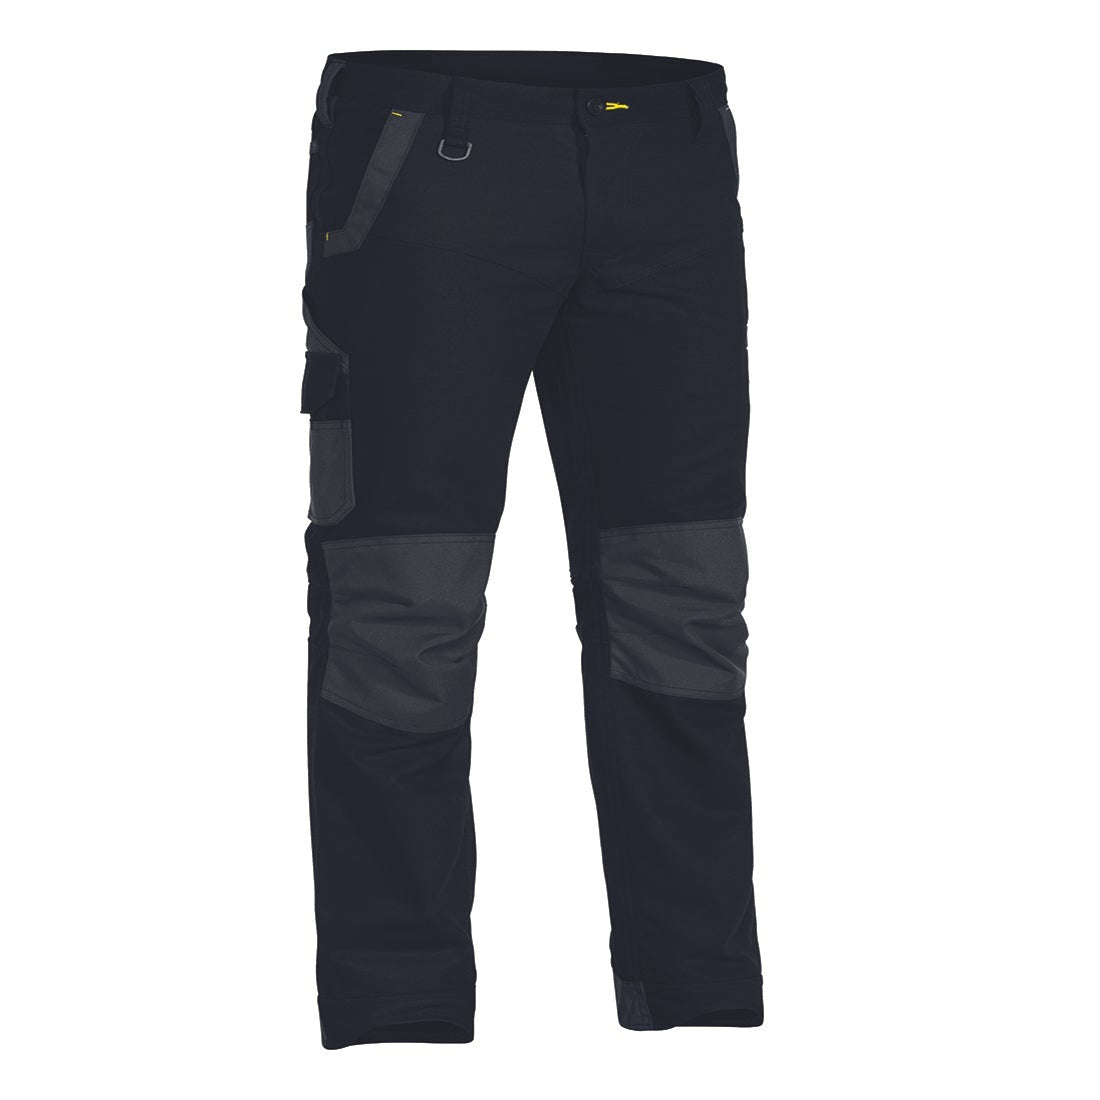 Bisley Flex & Move Stretch Pants